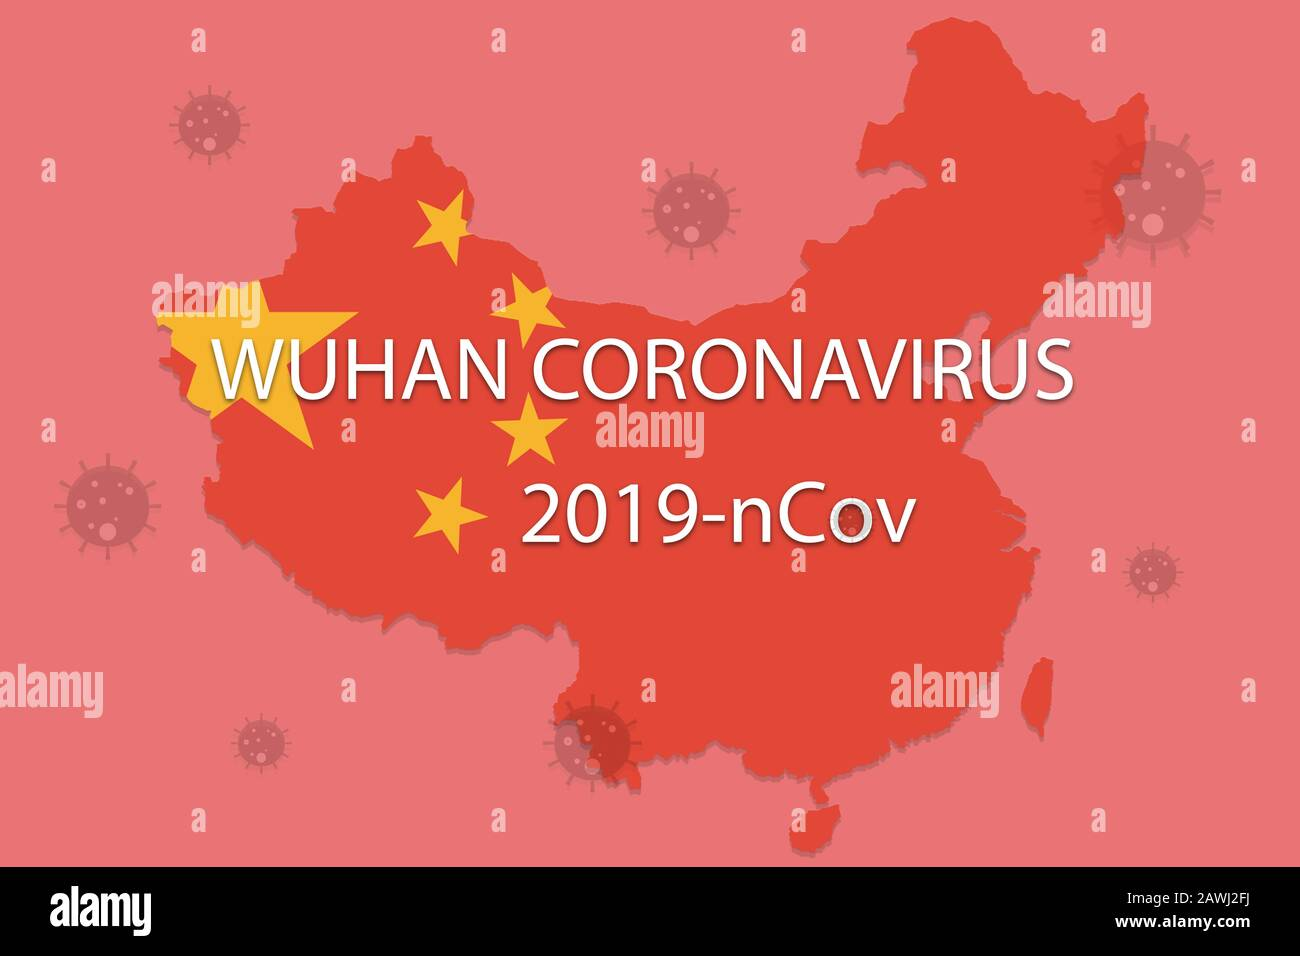 Chinese Novel coronavirus - 2019-nCoV or WUHAN virus concept with CORONAVIRUS text on Chinese map with red background. Stock Photo